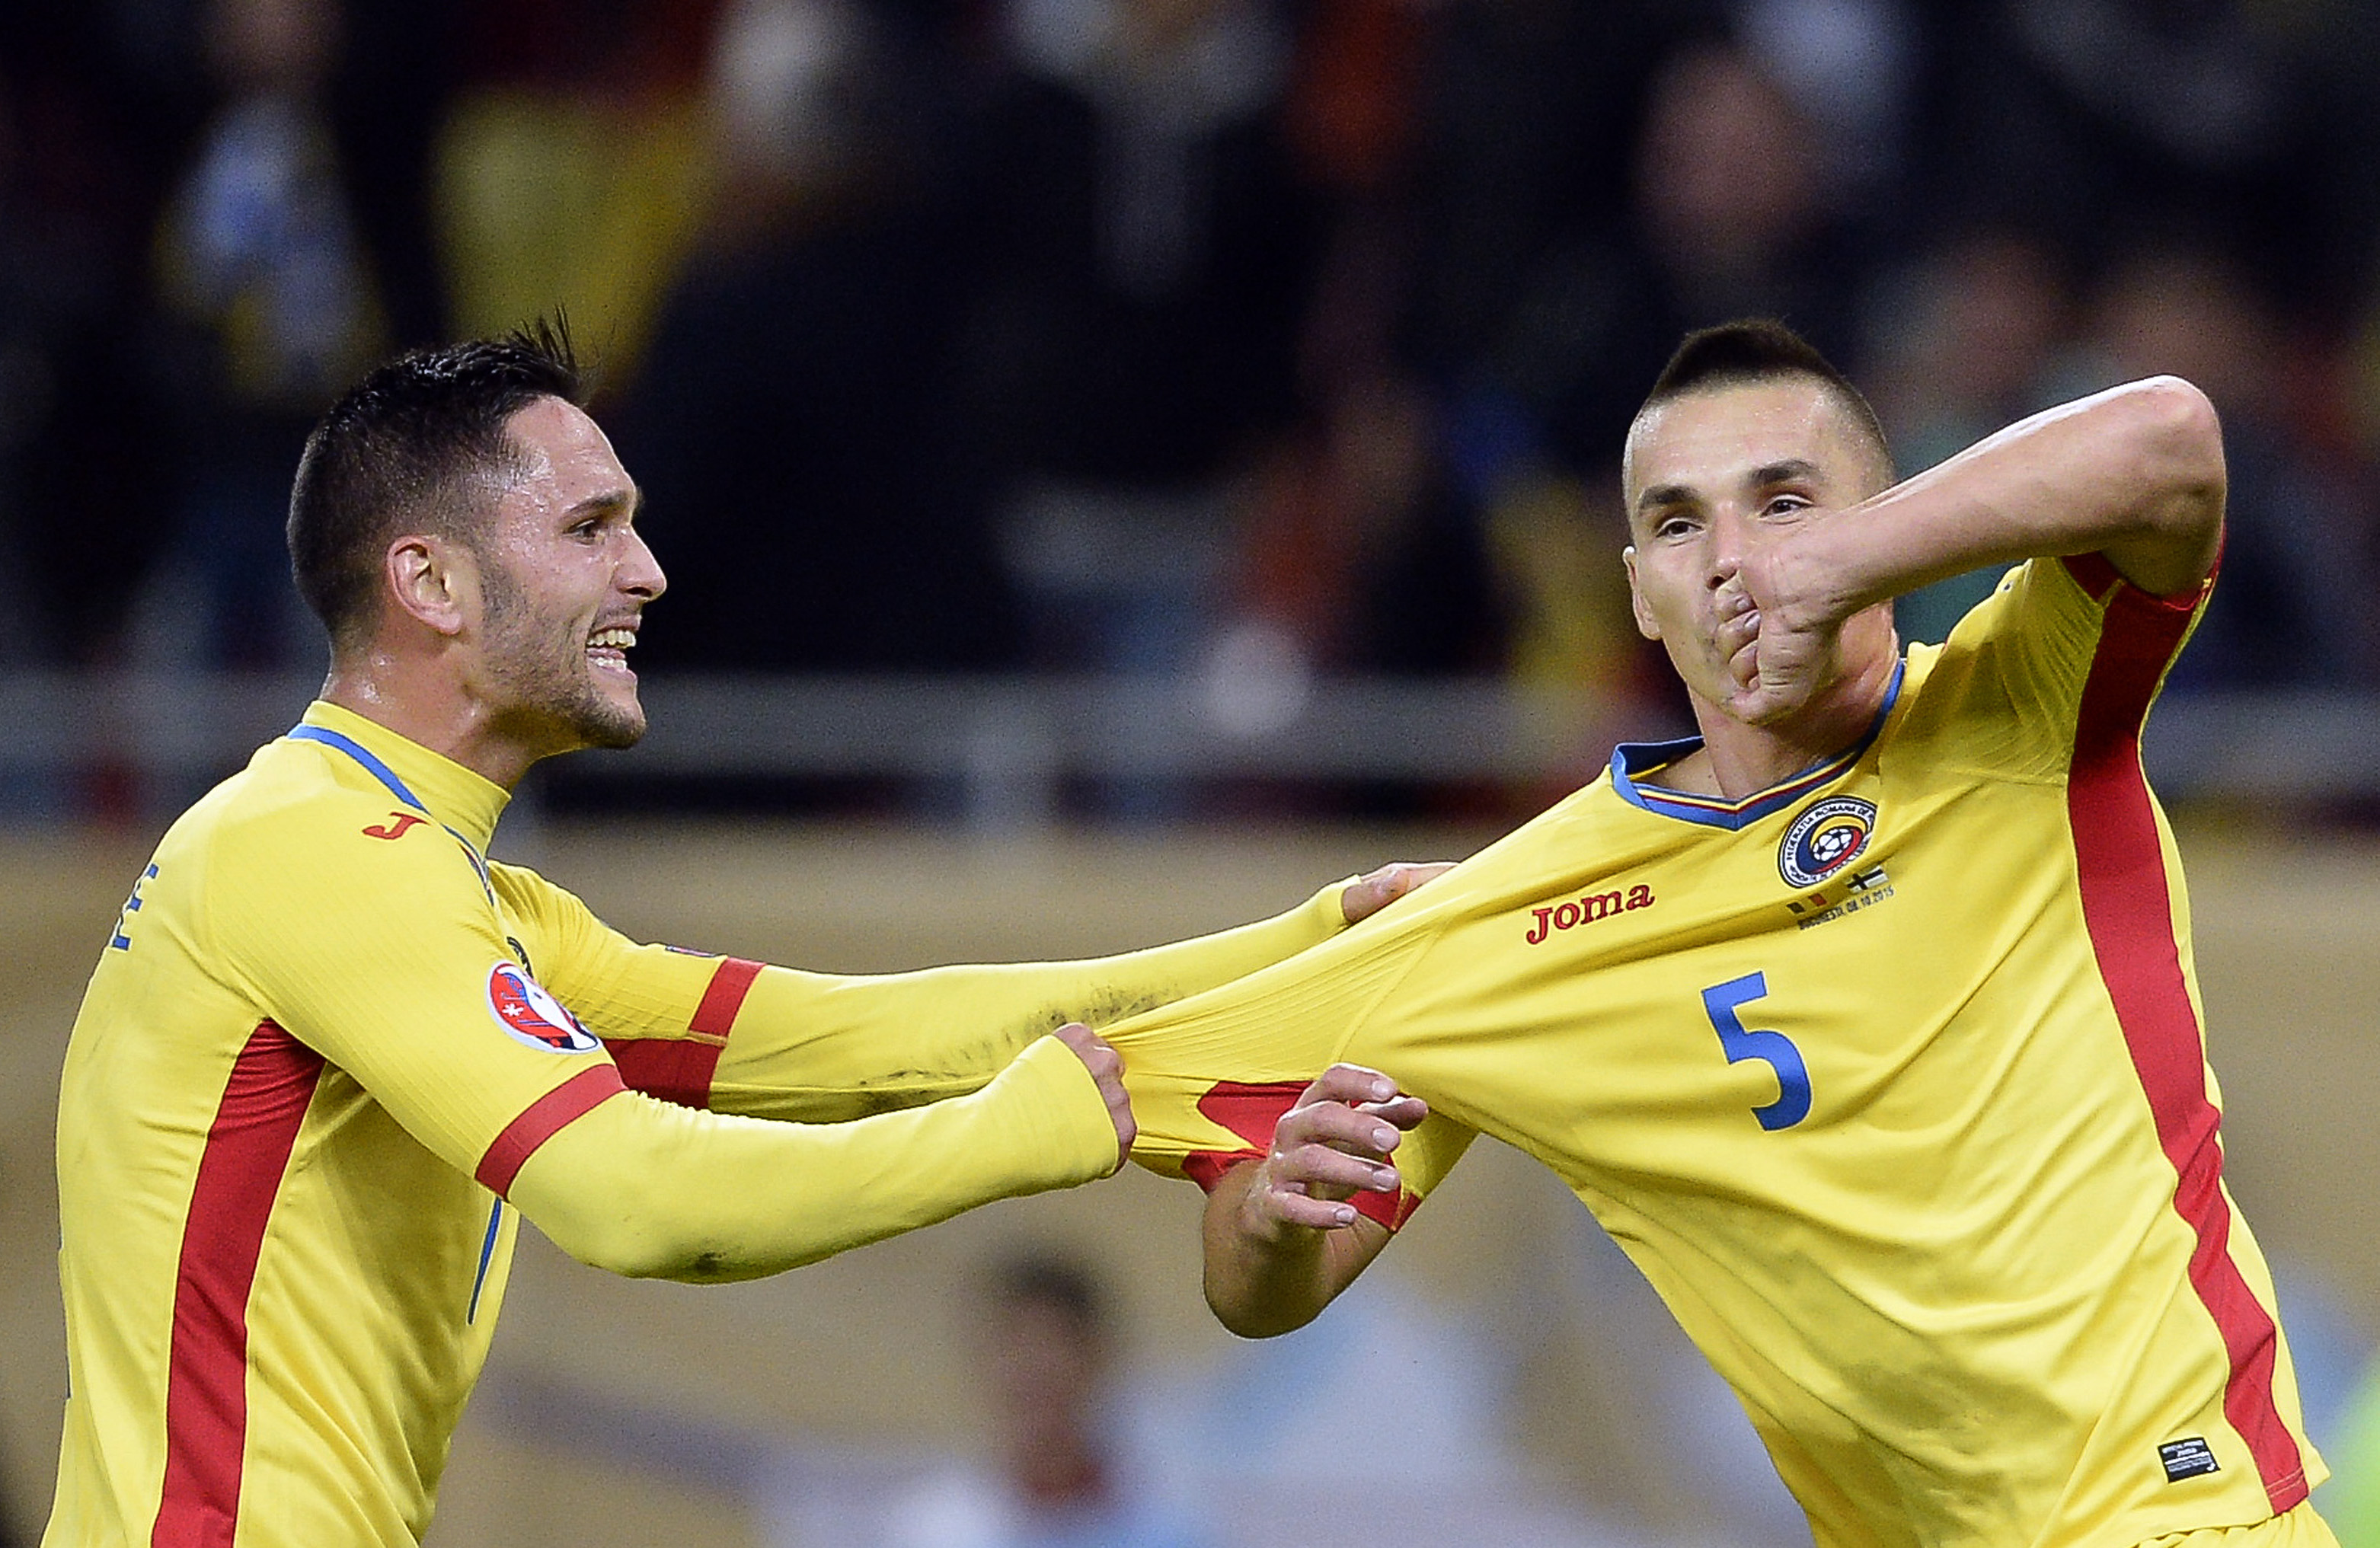 Romania's Hoban celebrates his goal against Finland with team mate Andone during their Euro 2016 Group F qualification soccer match in Bucharest